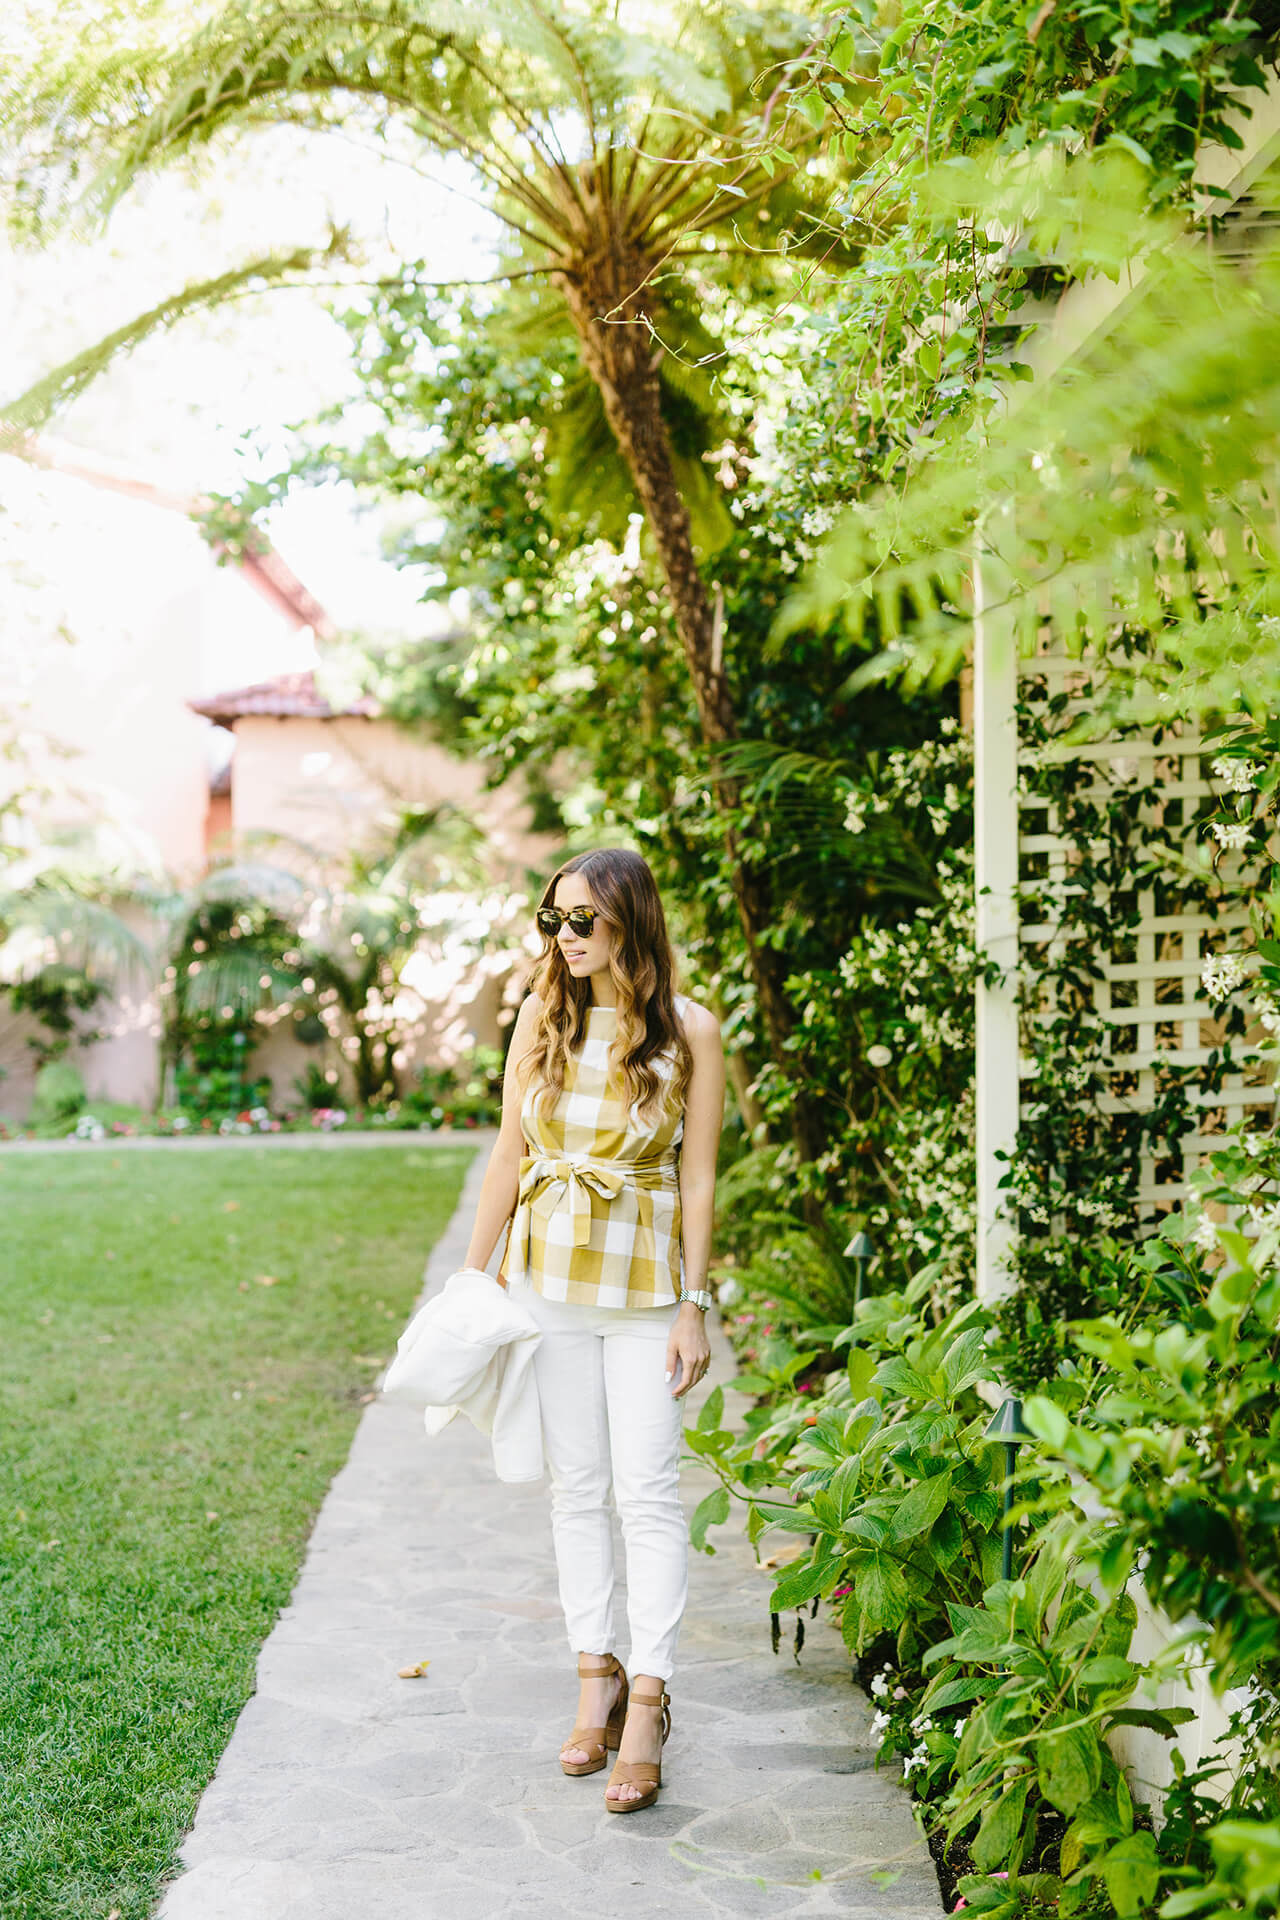 casual spring outfit with mustard gingham top and white jeans